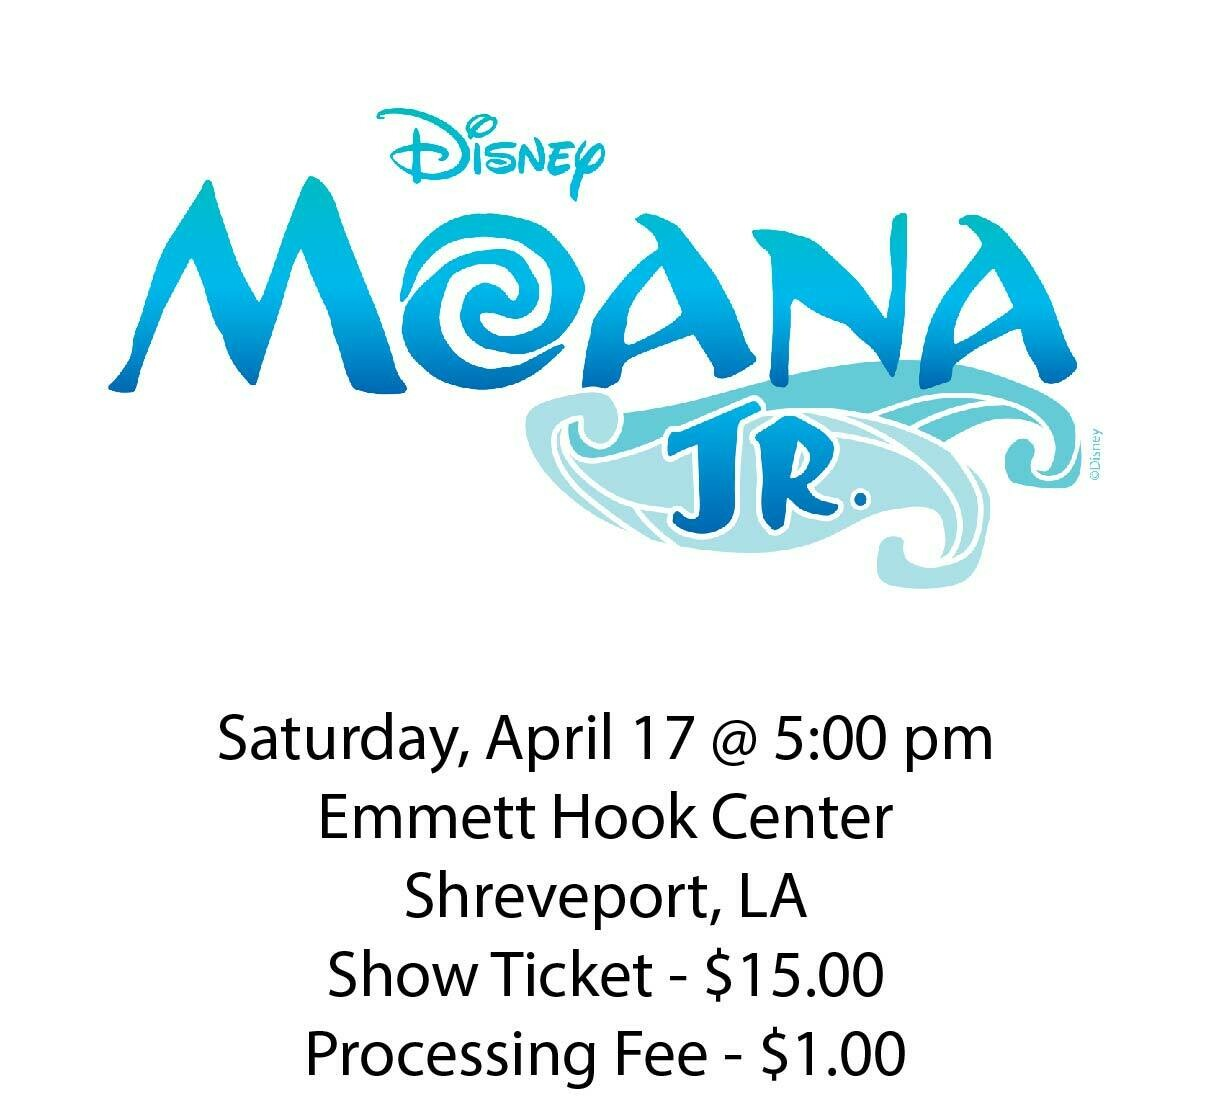 Disney's Moana JR., Saturday April 17th @ 5:00 pm